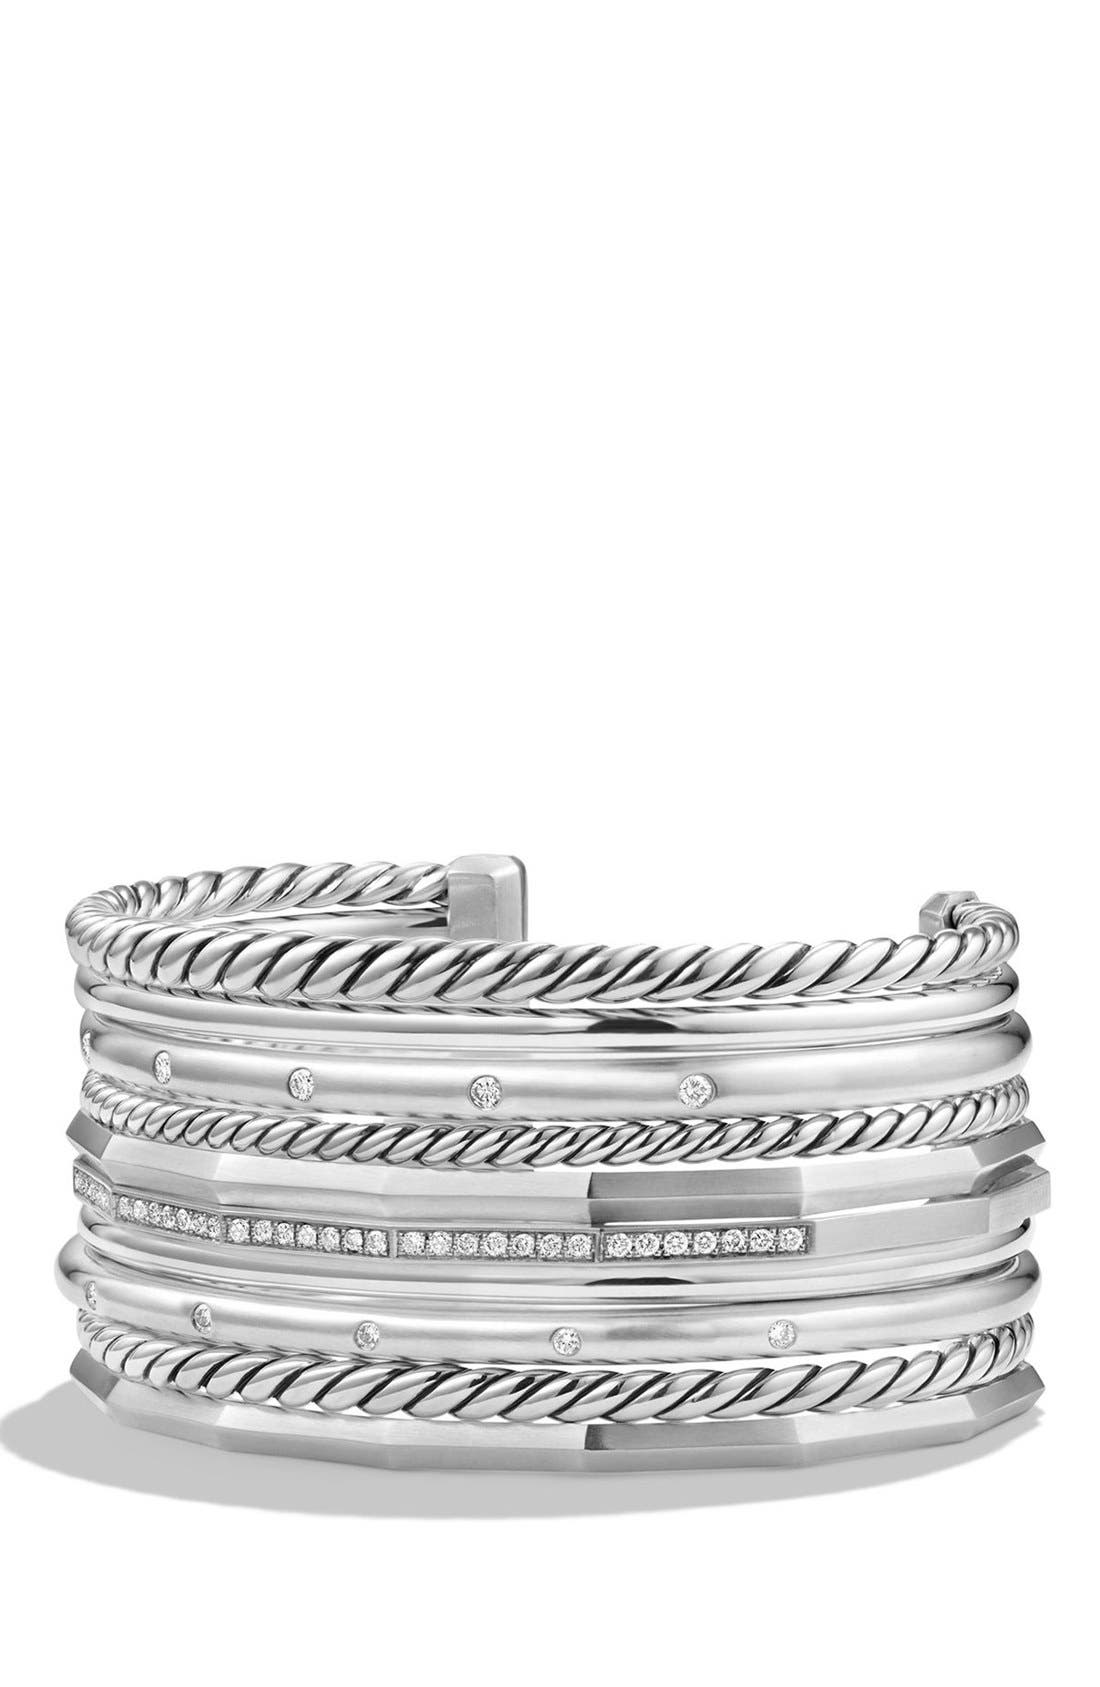 David Yurman 'Stax' Wide Cuff Bracelet with Diamonds